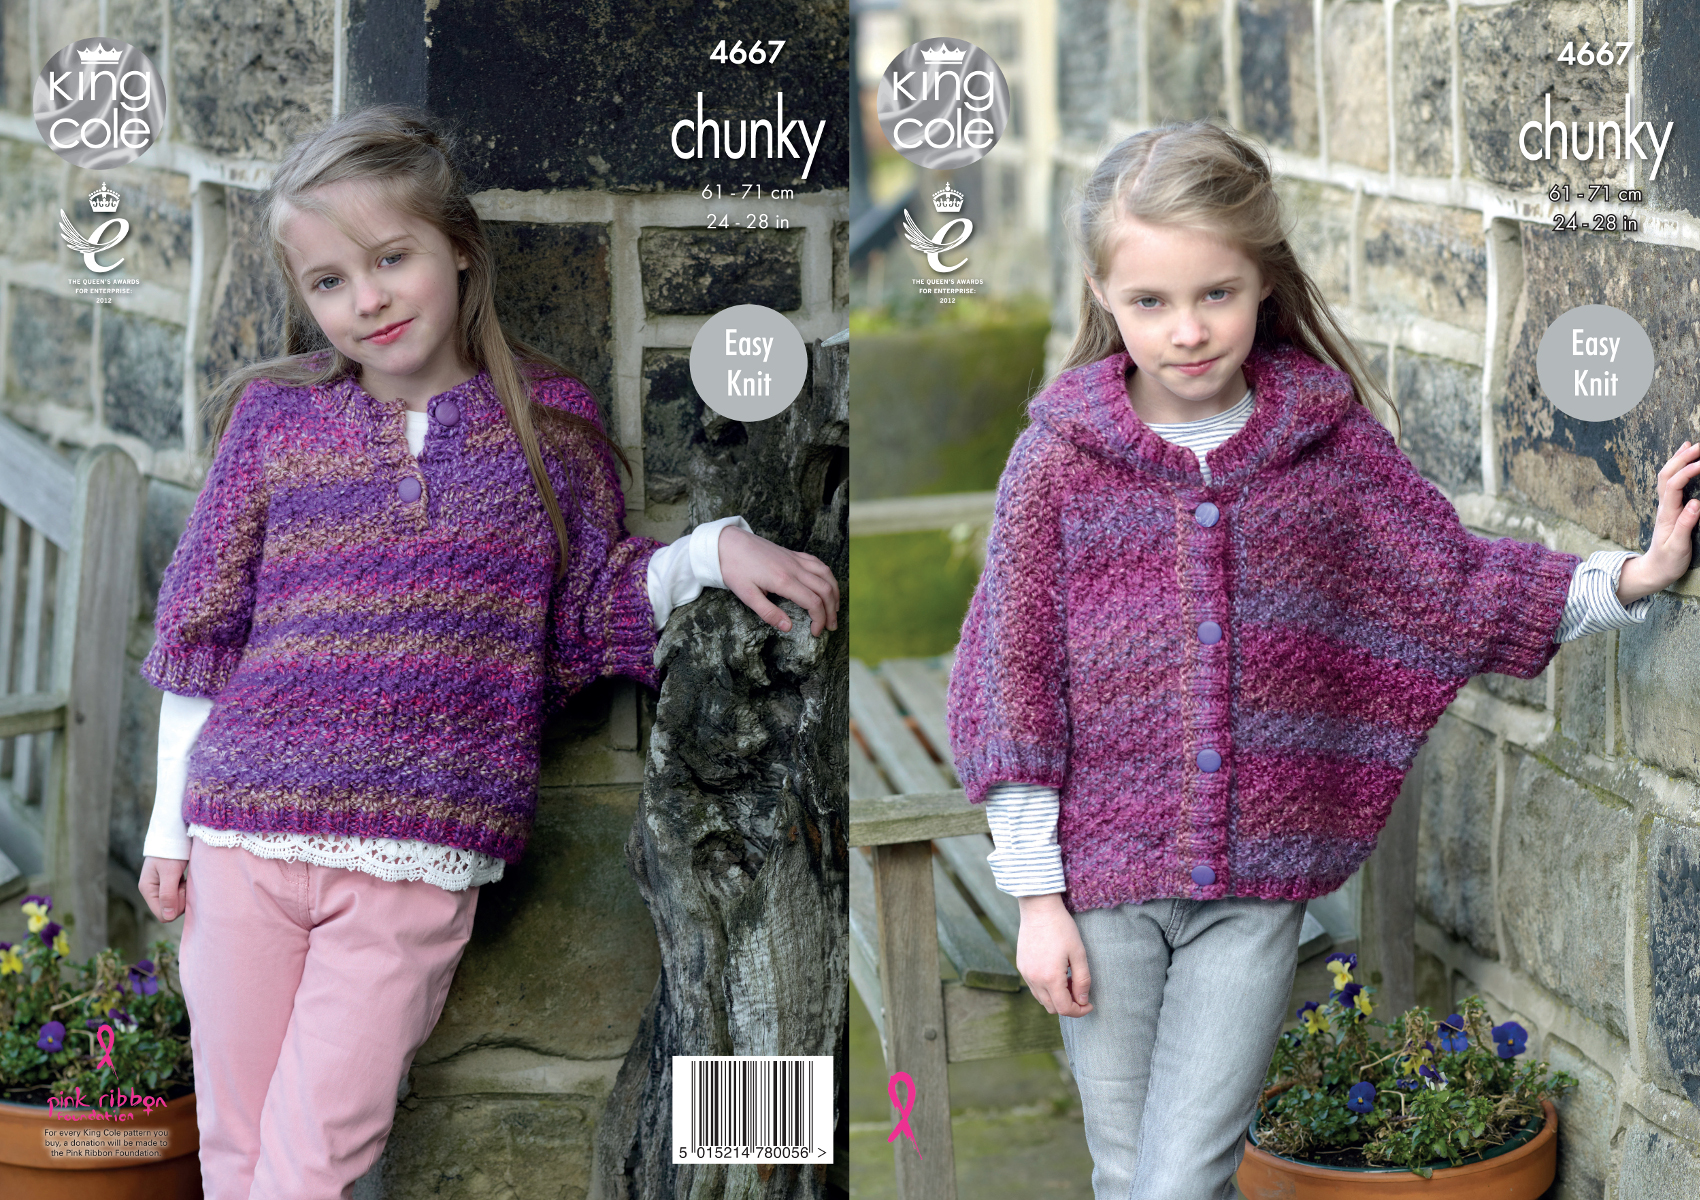 King Cole Girls Chunky Knitting Pattern Easy Knit Hood Or Round Neck